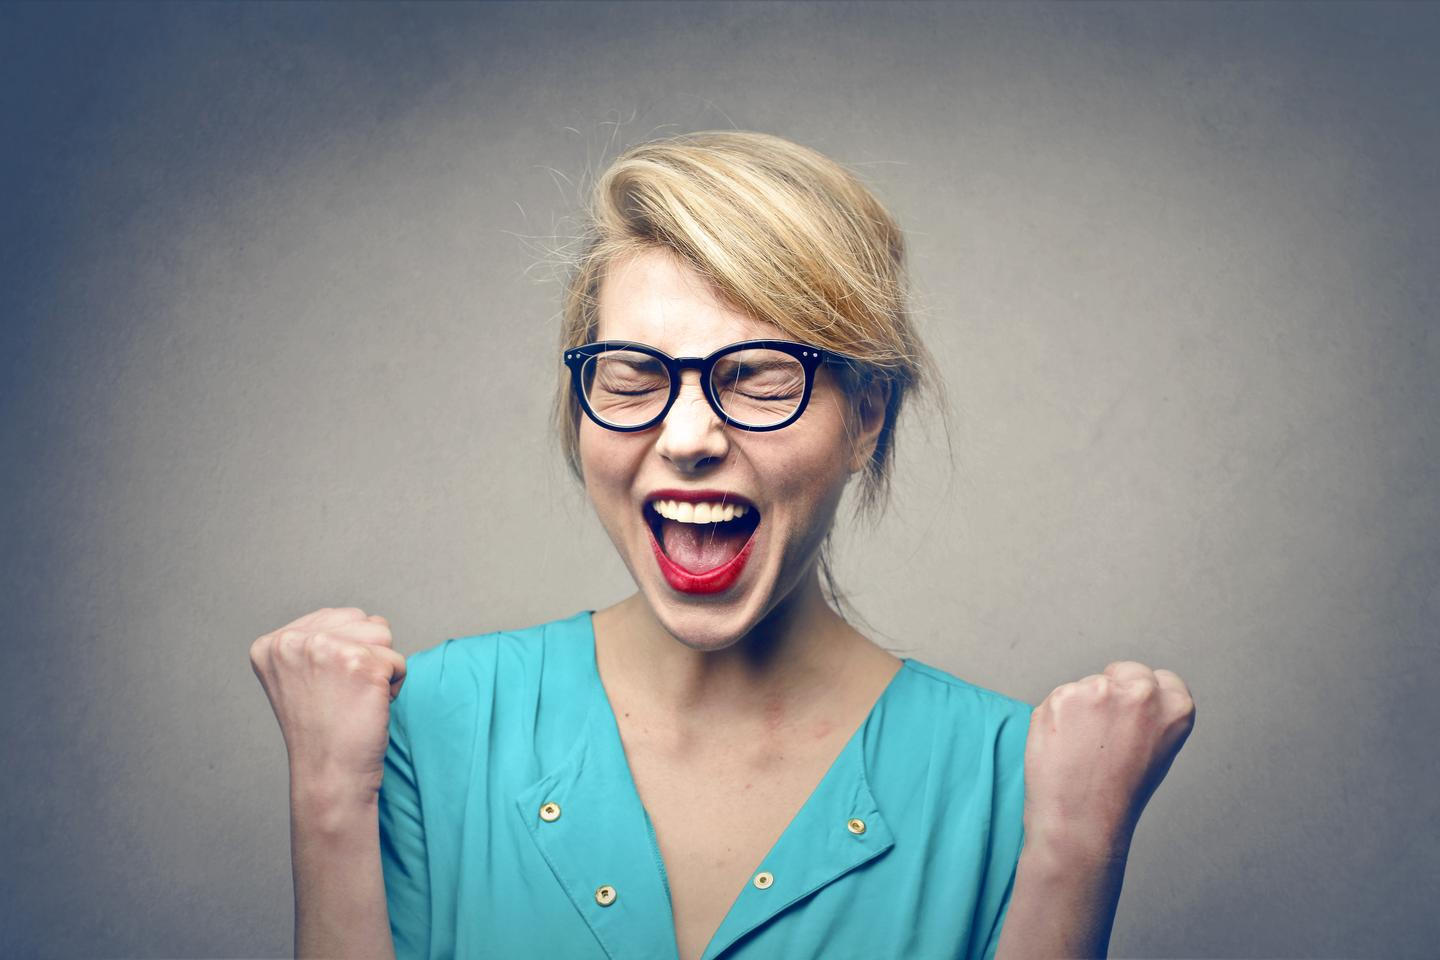 """According to the study, our brains process screams of joy faster and more accurately than """"alarming"""" screams"""